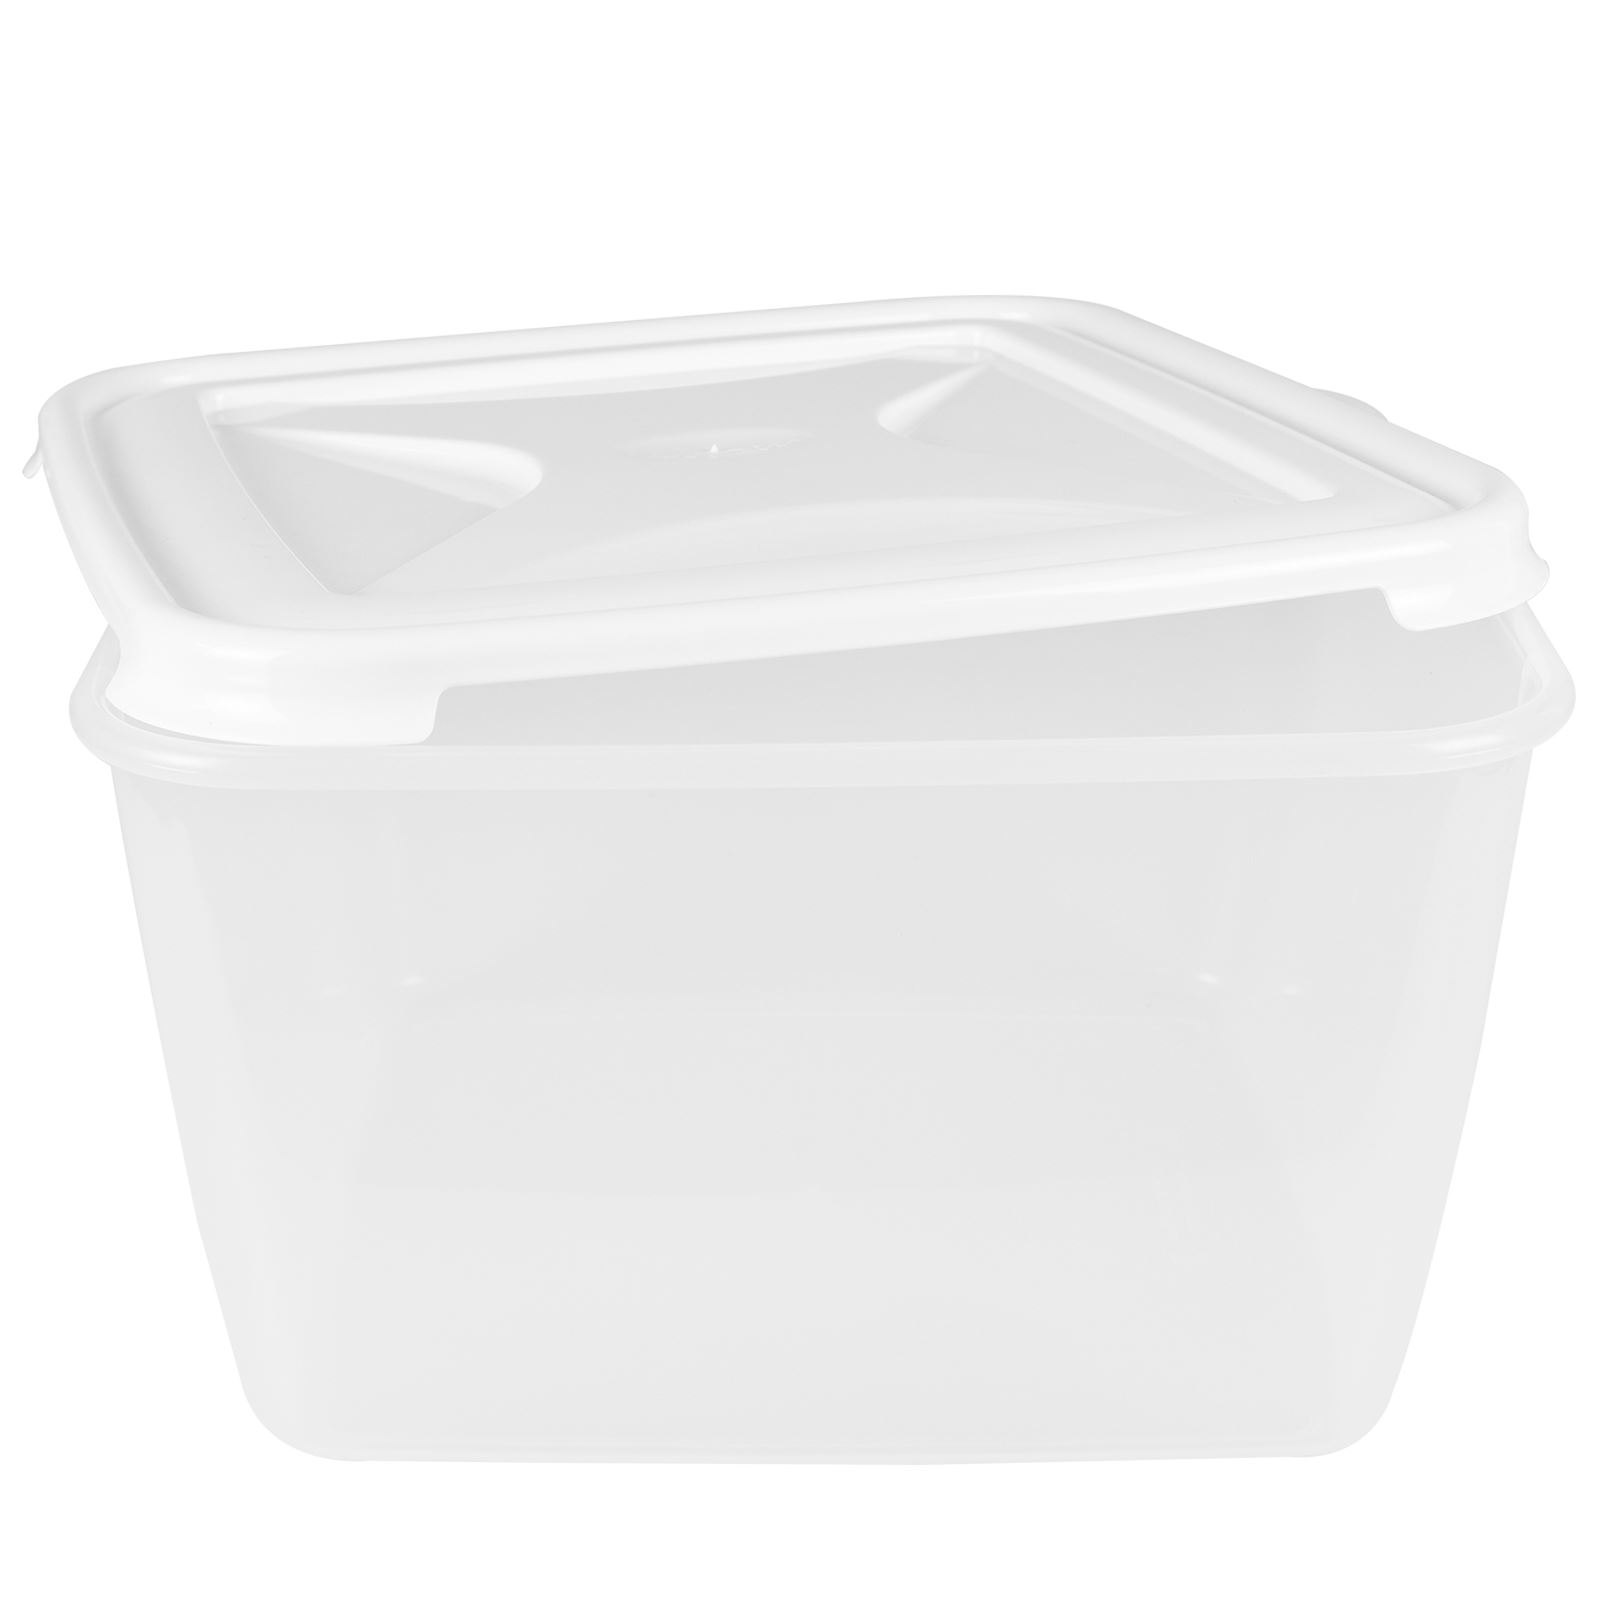 Wham-Plastic-Food-Storage-Shelf-Box-Stackable-Containers-Clear-Secure-Clip-Lid thumbnail 9